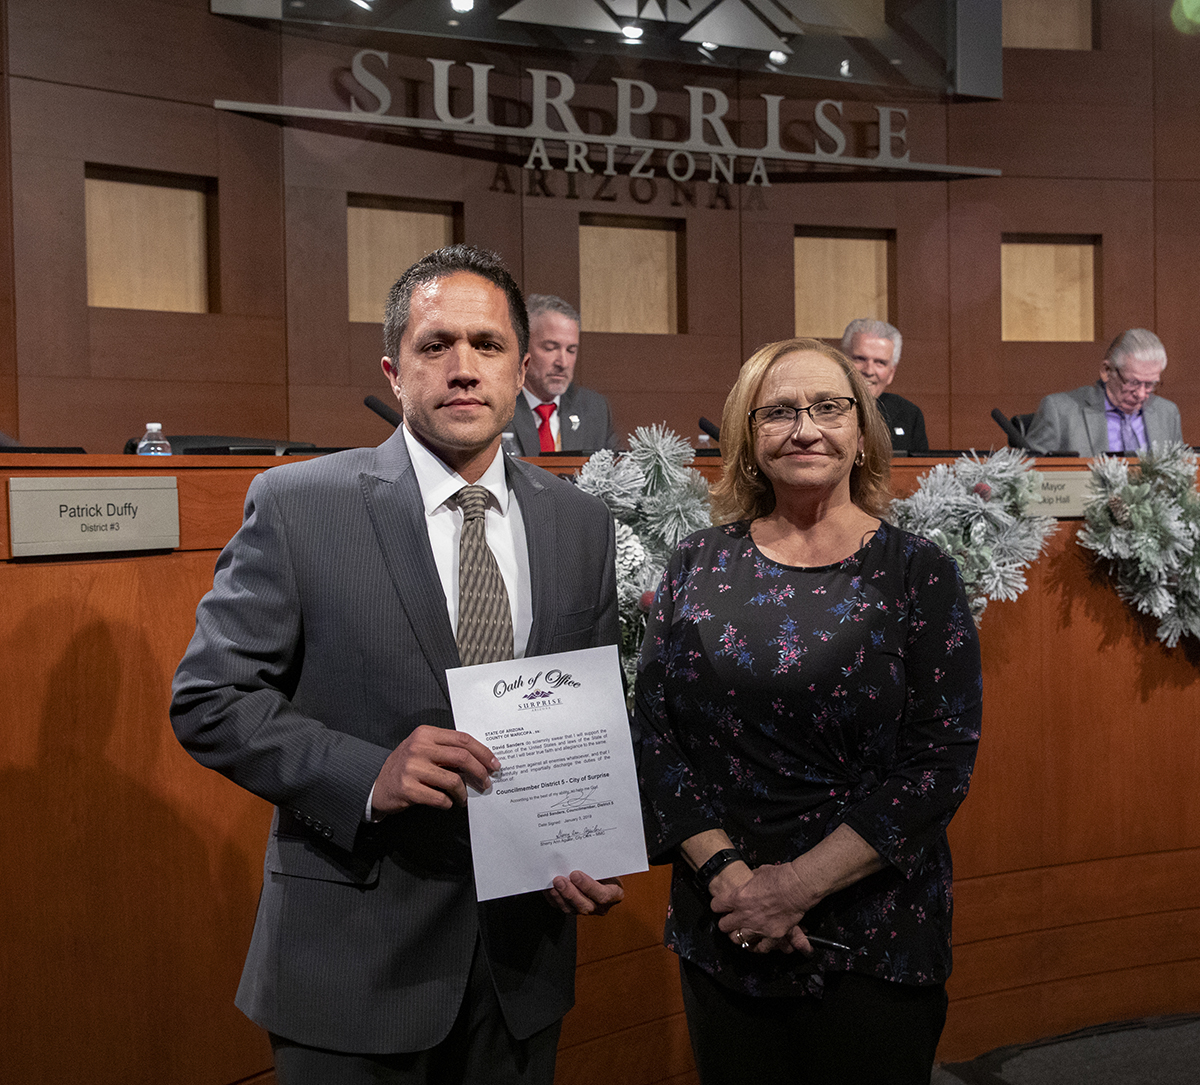 The Surprise City Council appointed David Sanders to serve as the new District 5 Councilmember at the January 3 City Council Meeting